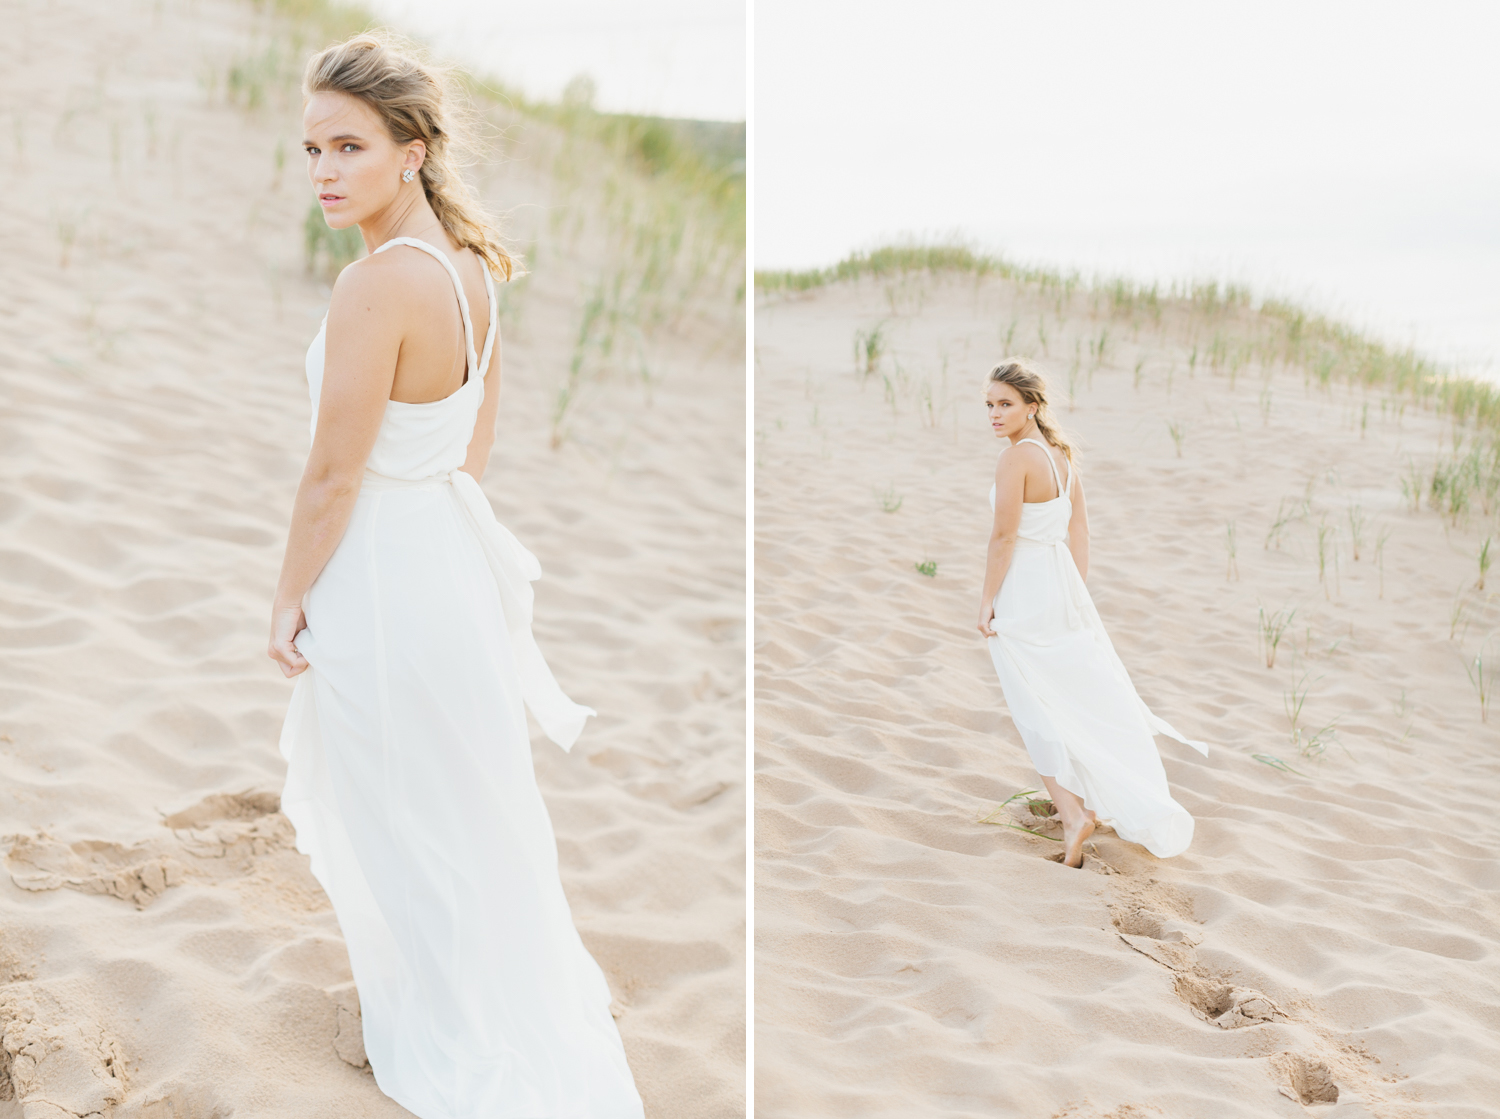 Sleeping Bear Dunes Bridal Portraits Wedding Photographer Mae Stier-018.jpg